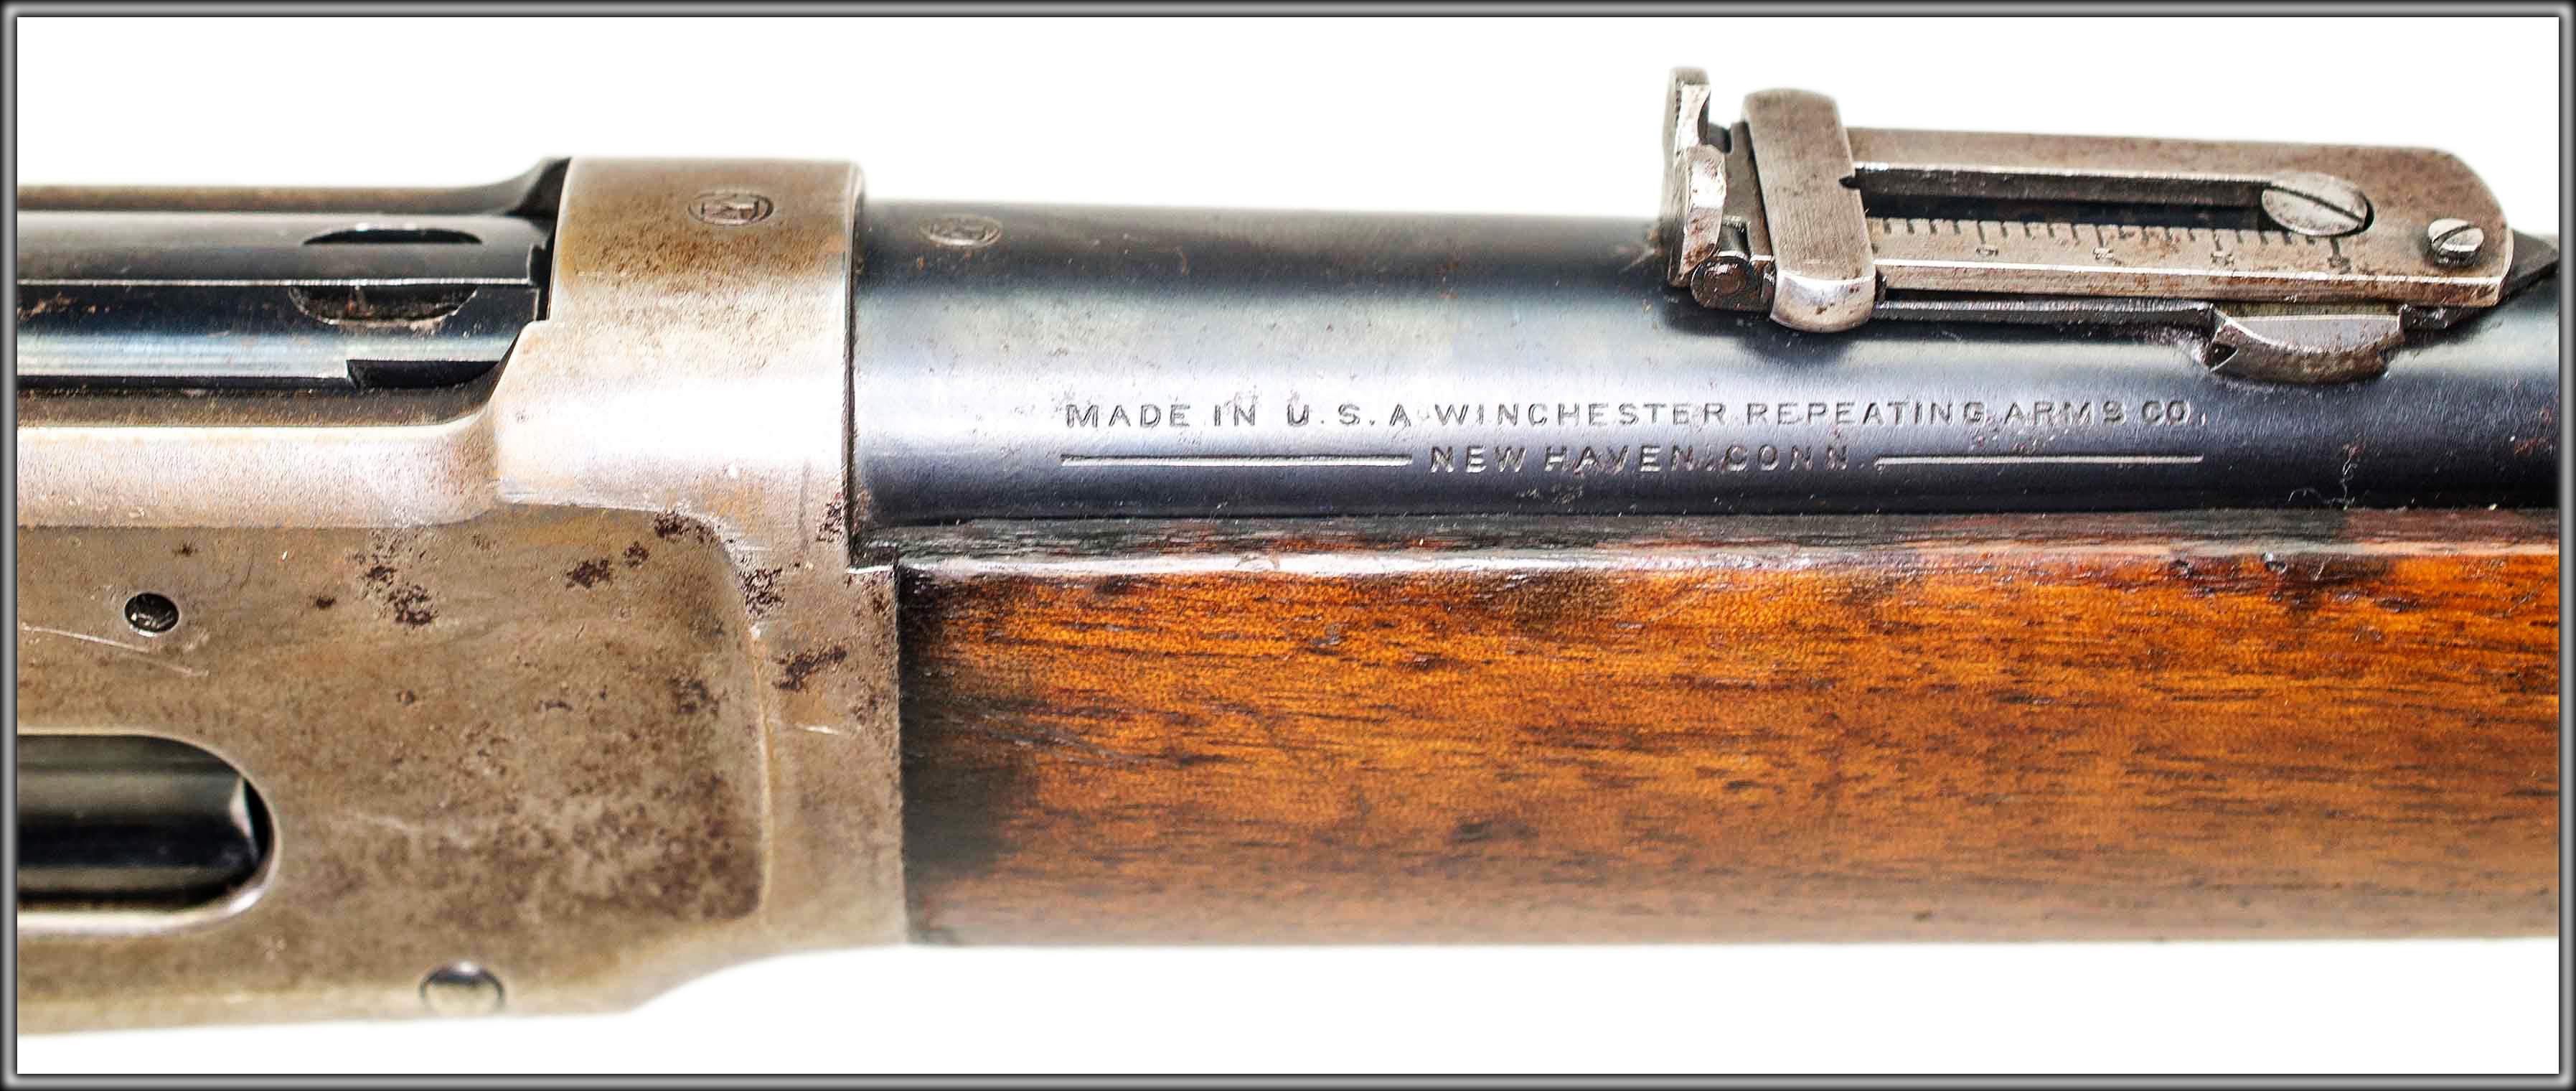 WINCHESTER MODEL 94 [30-30 WIN] (Auction ID: 14659151, End Time